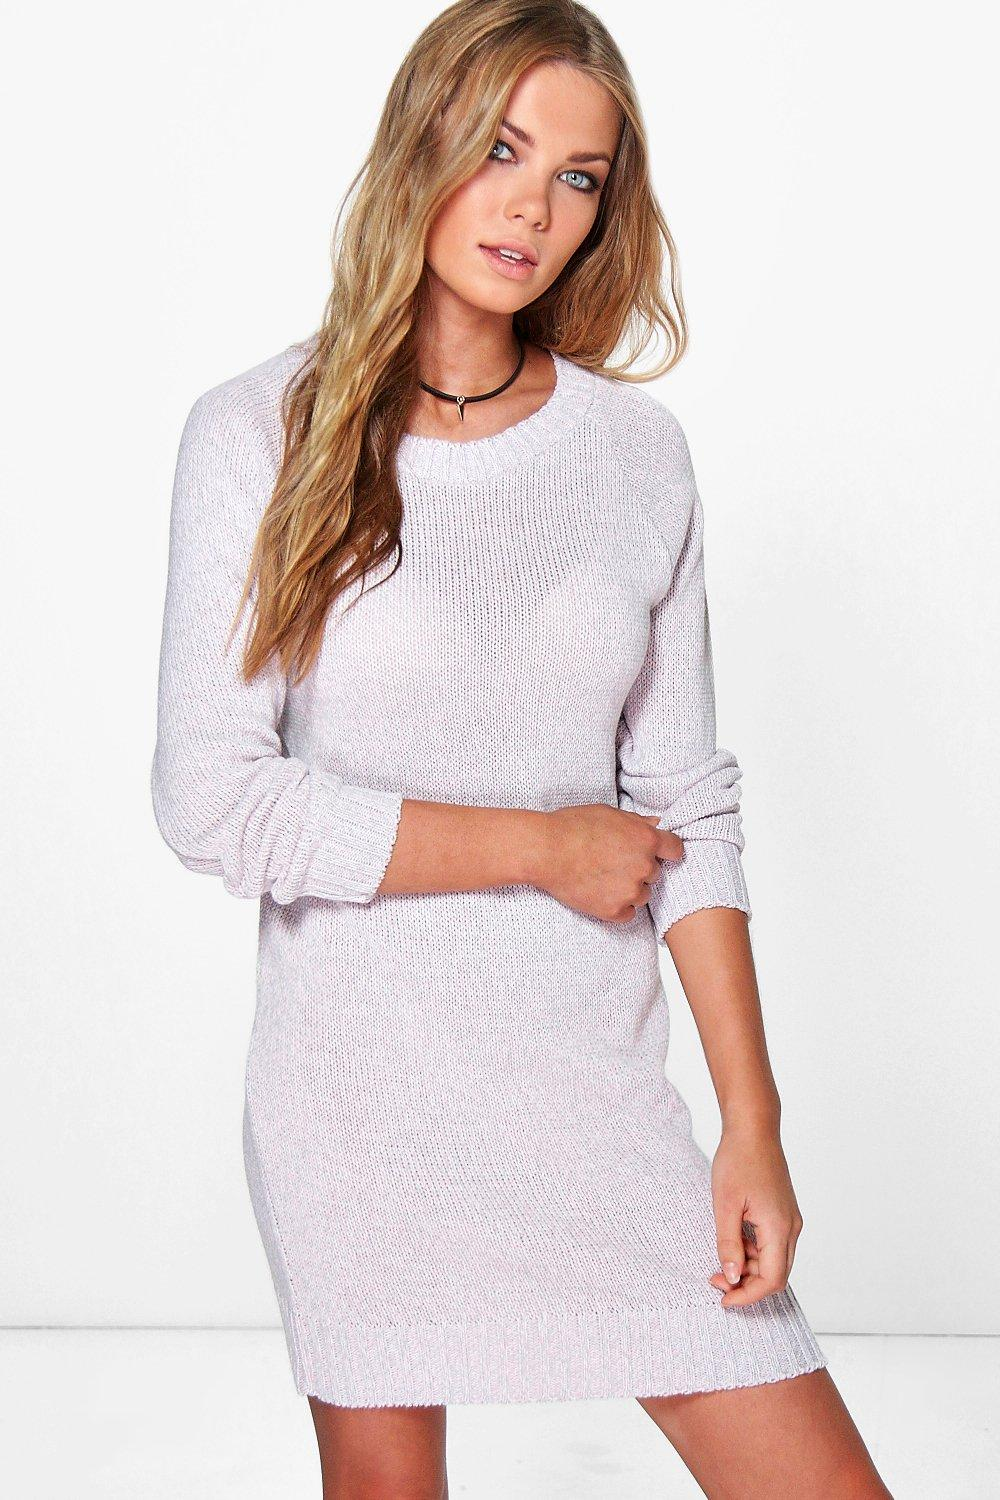 Lara Twisted Marl Knit Jumper Dress